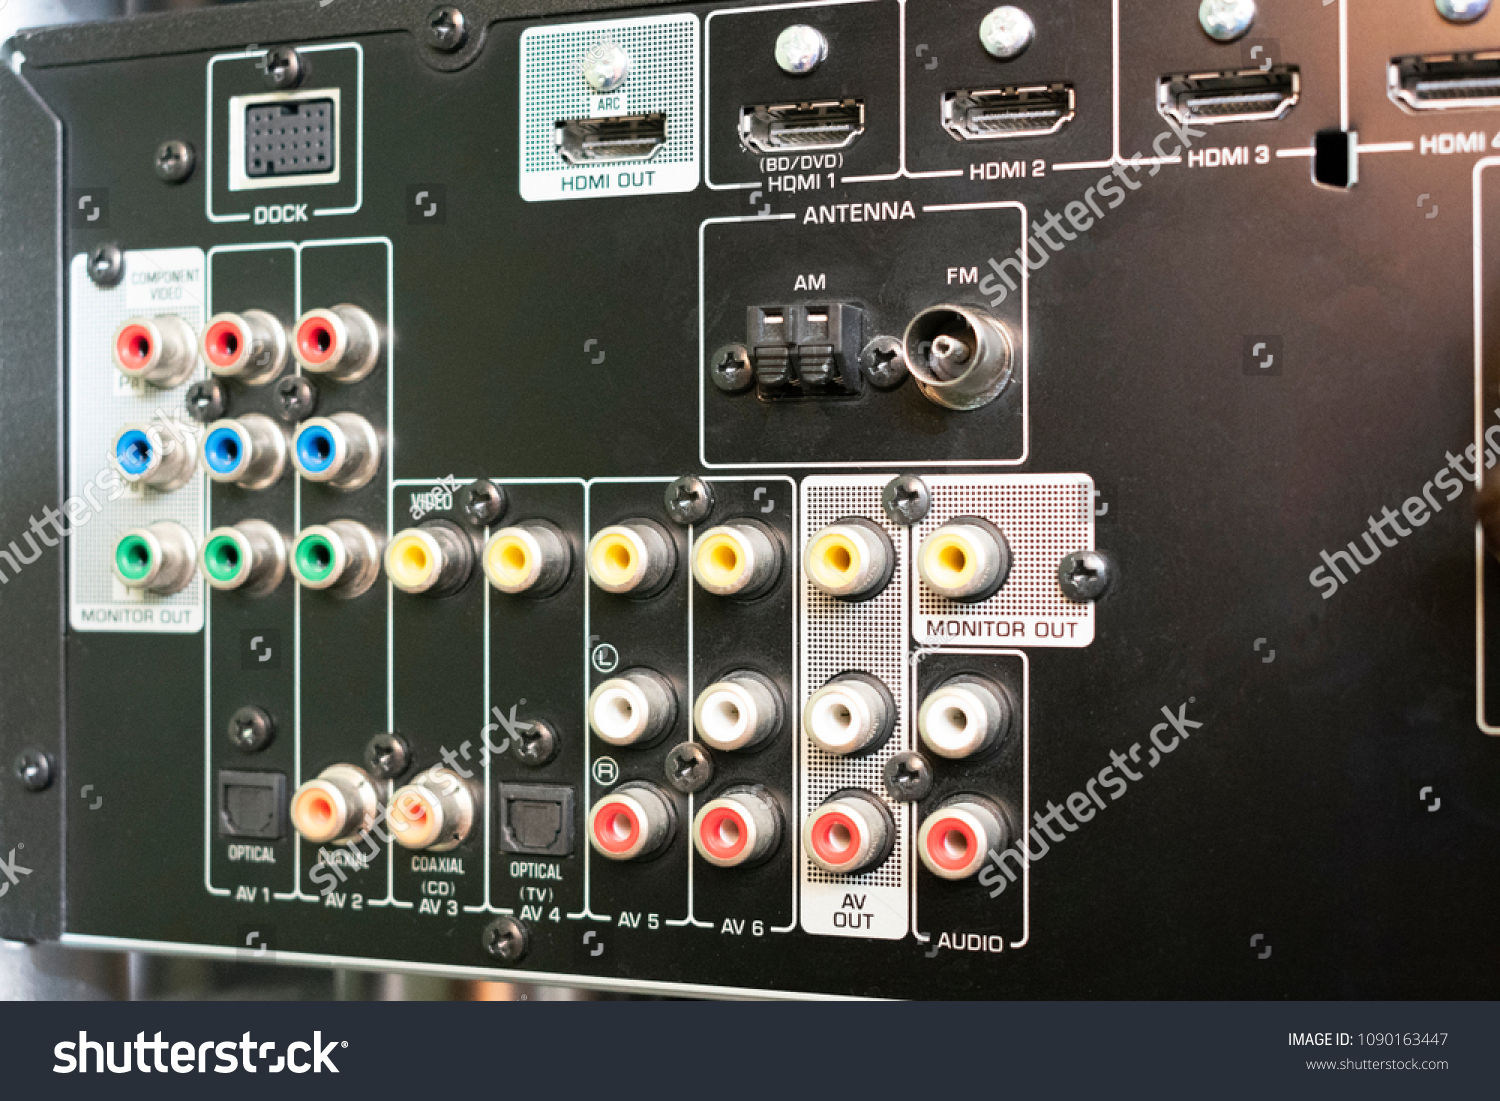 Back Audio Receiver Video Home Theater Stock Photo Edit Now Wiring Panel Of For With Inputs Connecting Equipment And Output To